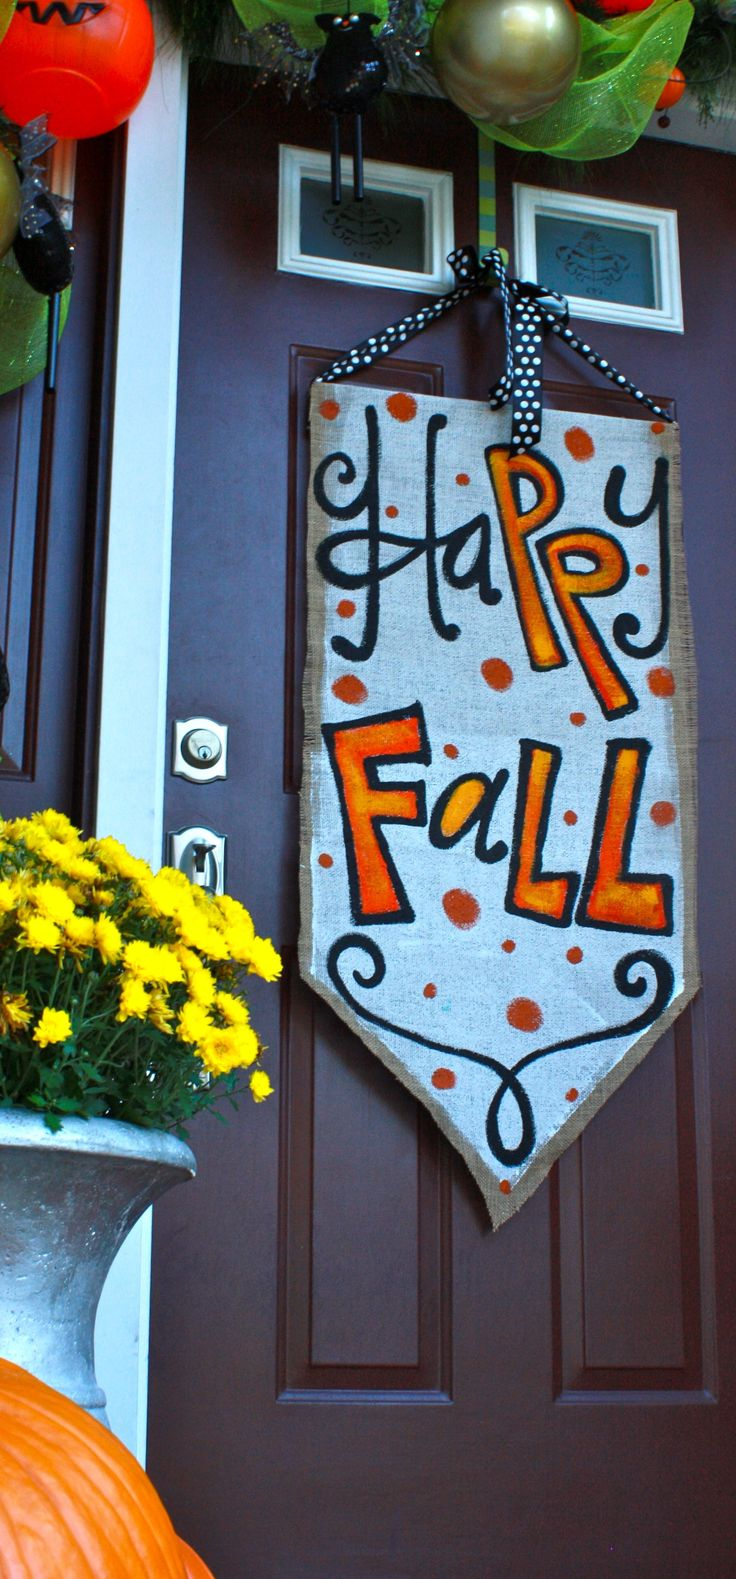 HAPPY FALL Lisa Frost                                                                                                                                                                                 More